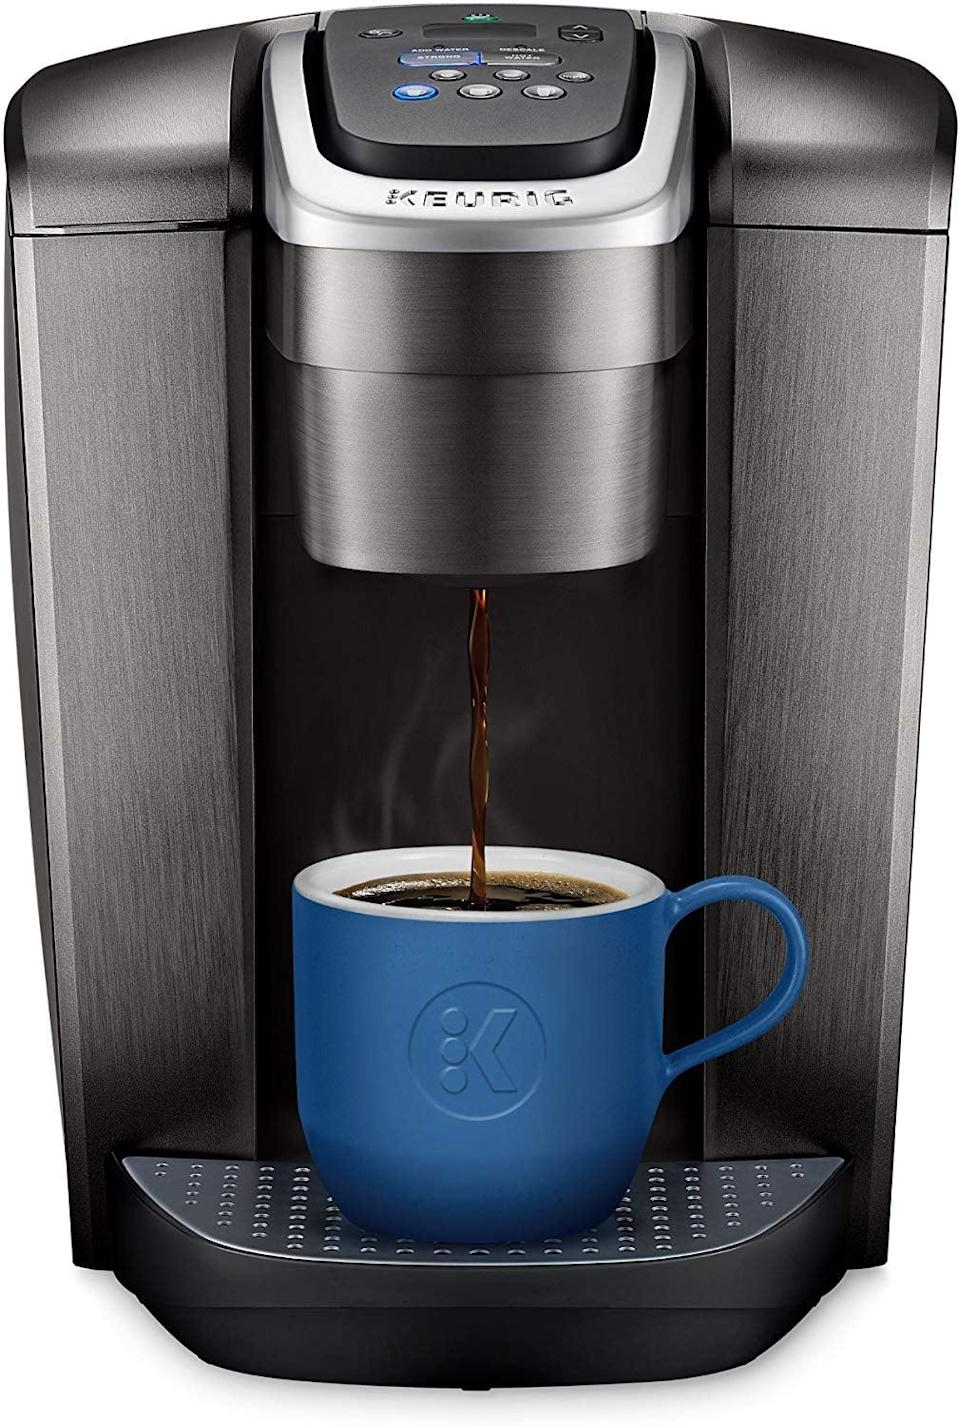 <p>They can enjoy a relaxing morning cup of coffee easily with this <span>Keurig Single Serve K-Cup Pod Coffee Maker</span> ($155, originally $170).</p>